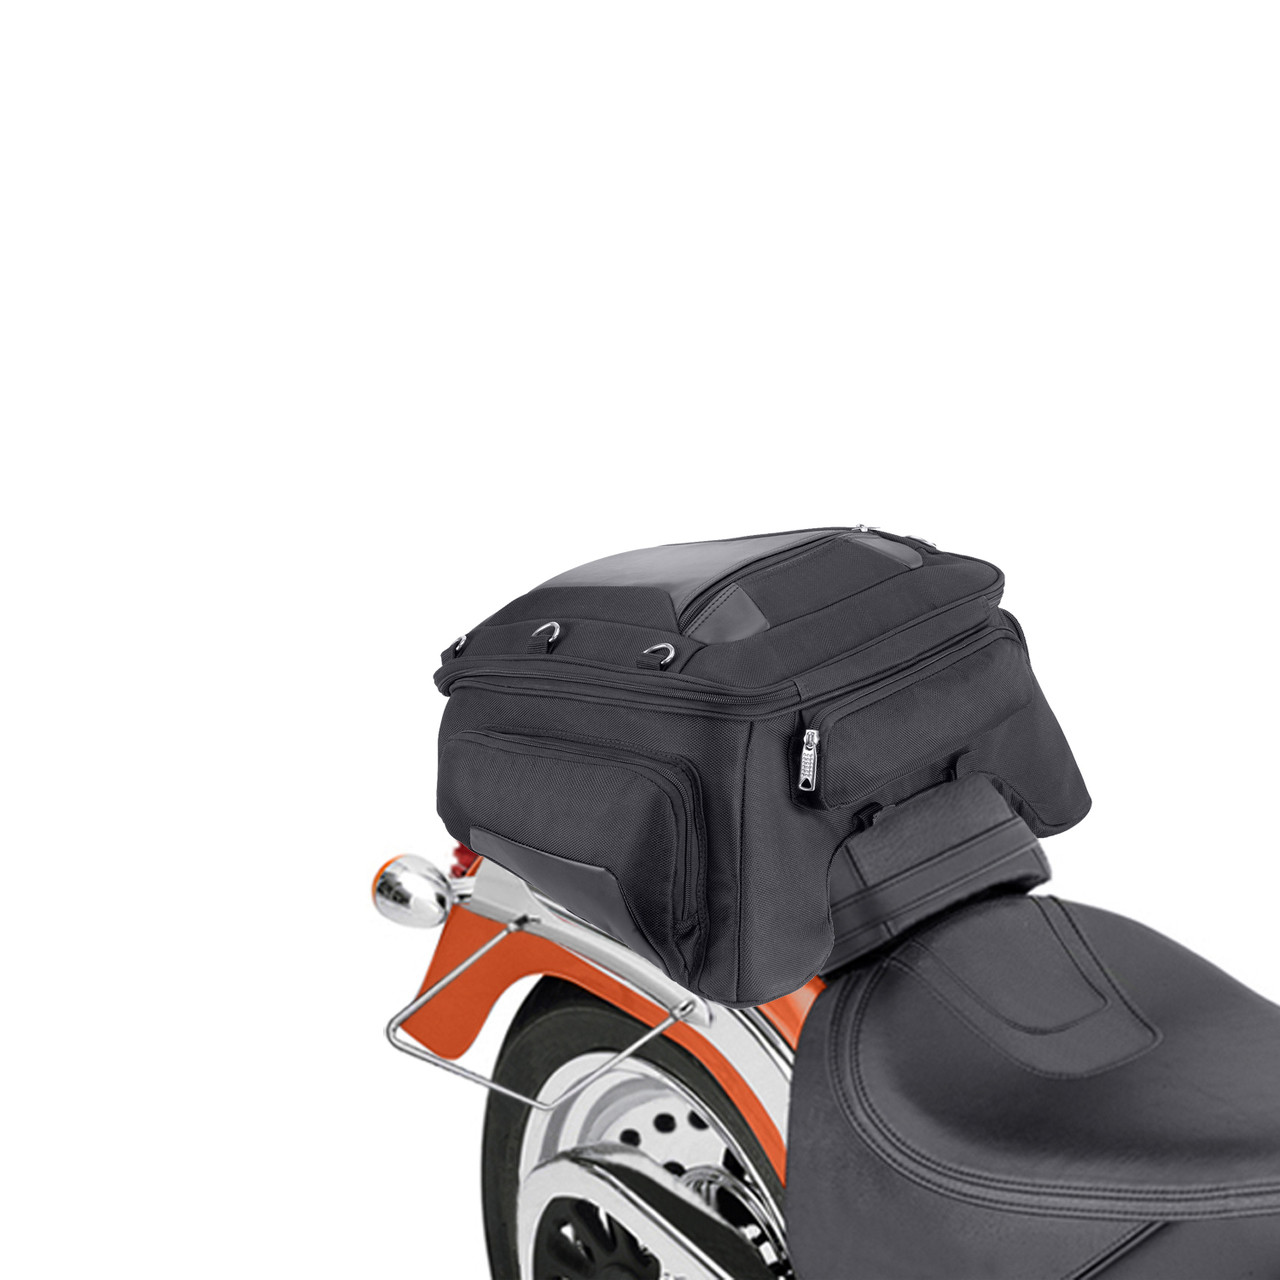 Motorcycle Tunnel Seat Luggage  Back View on Bike